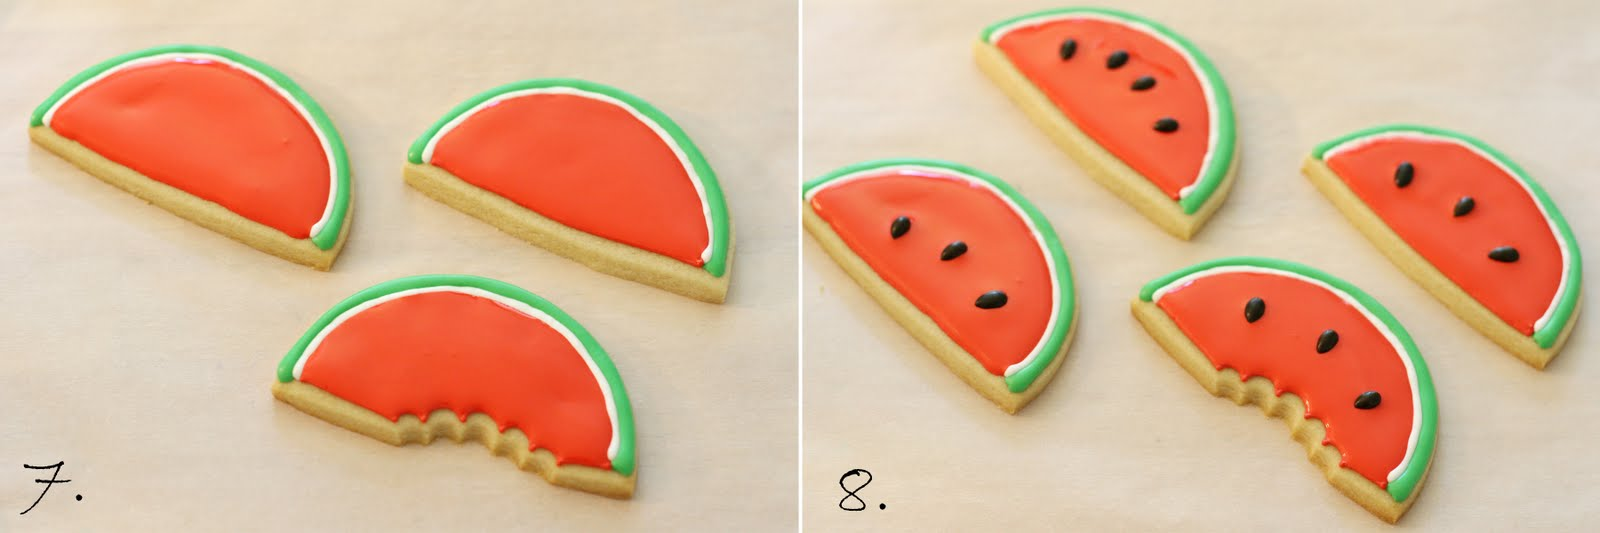 Watermelon slice outlineWatermelon Slice Outline